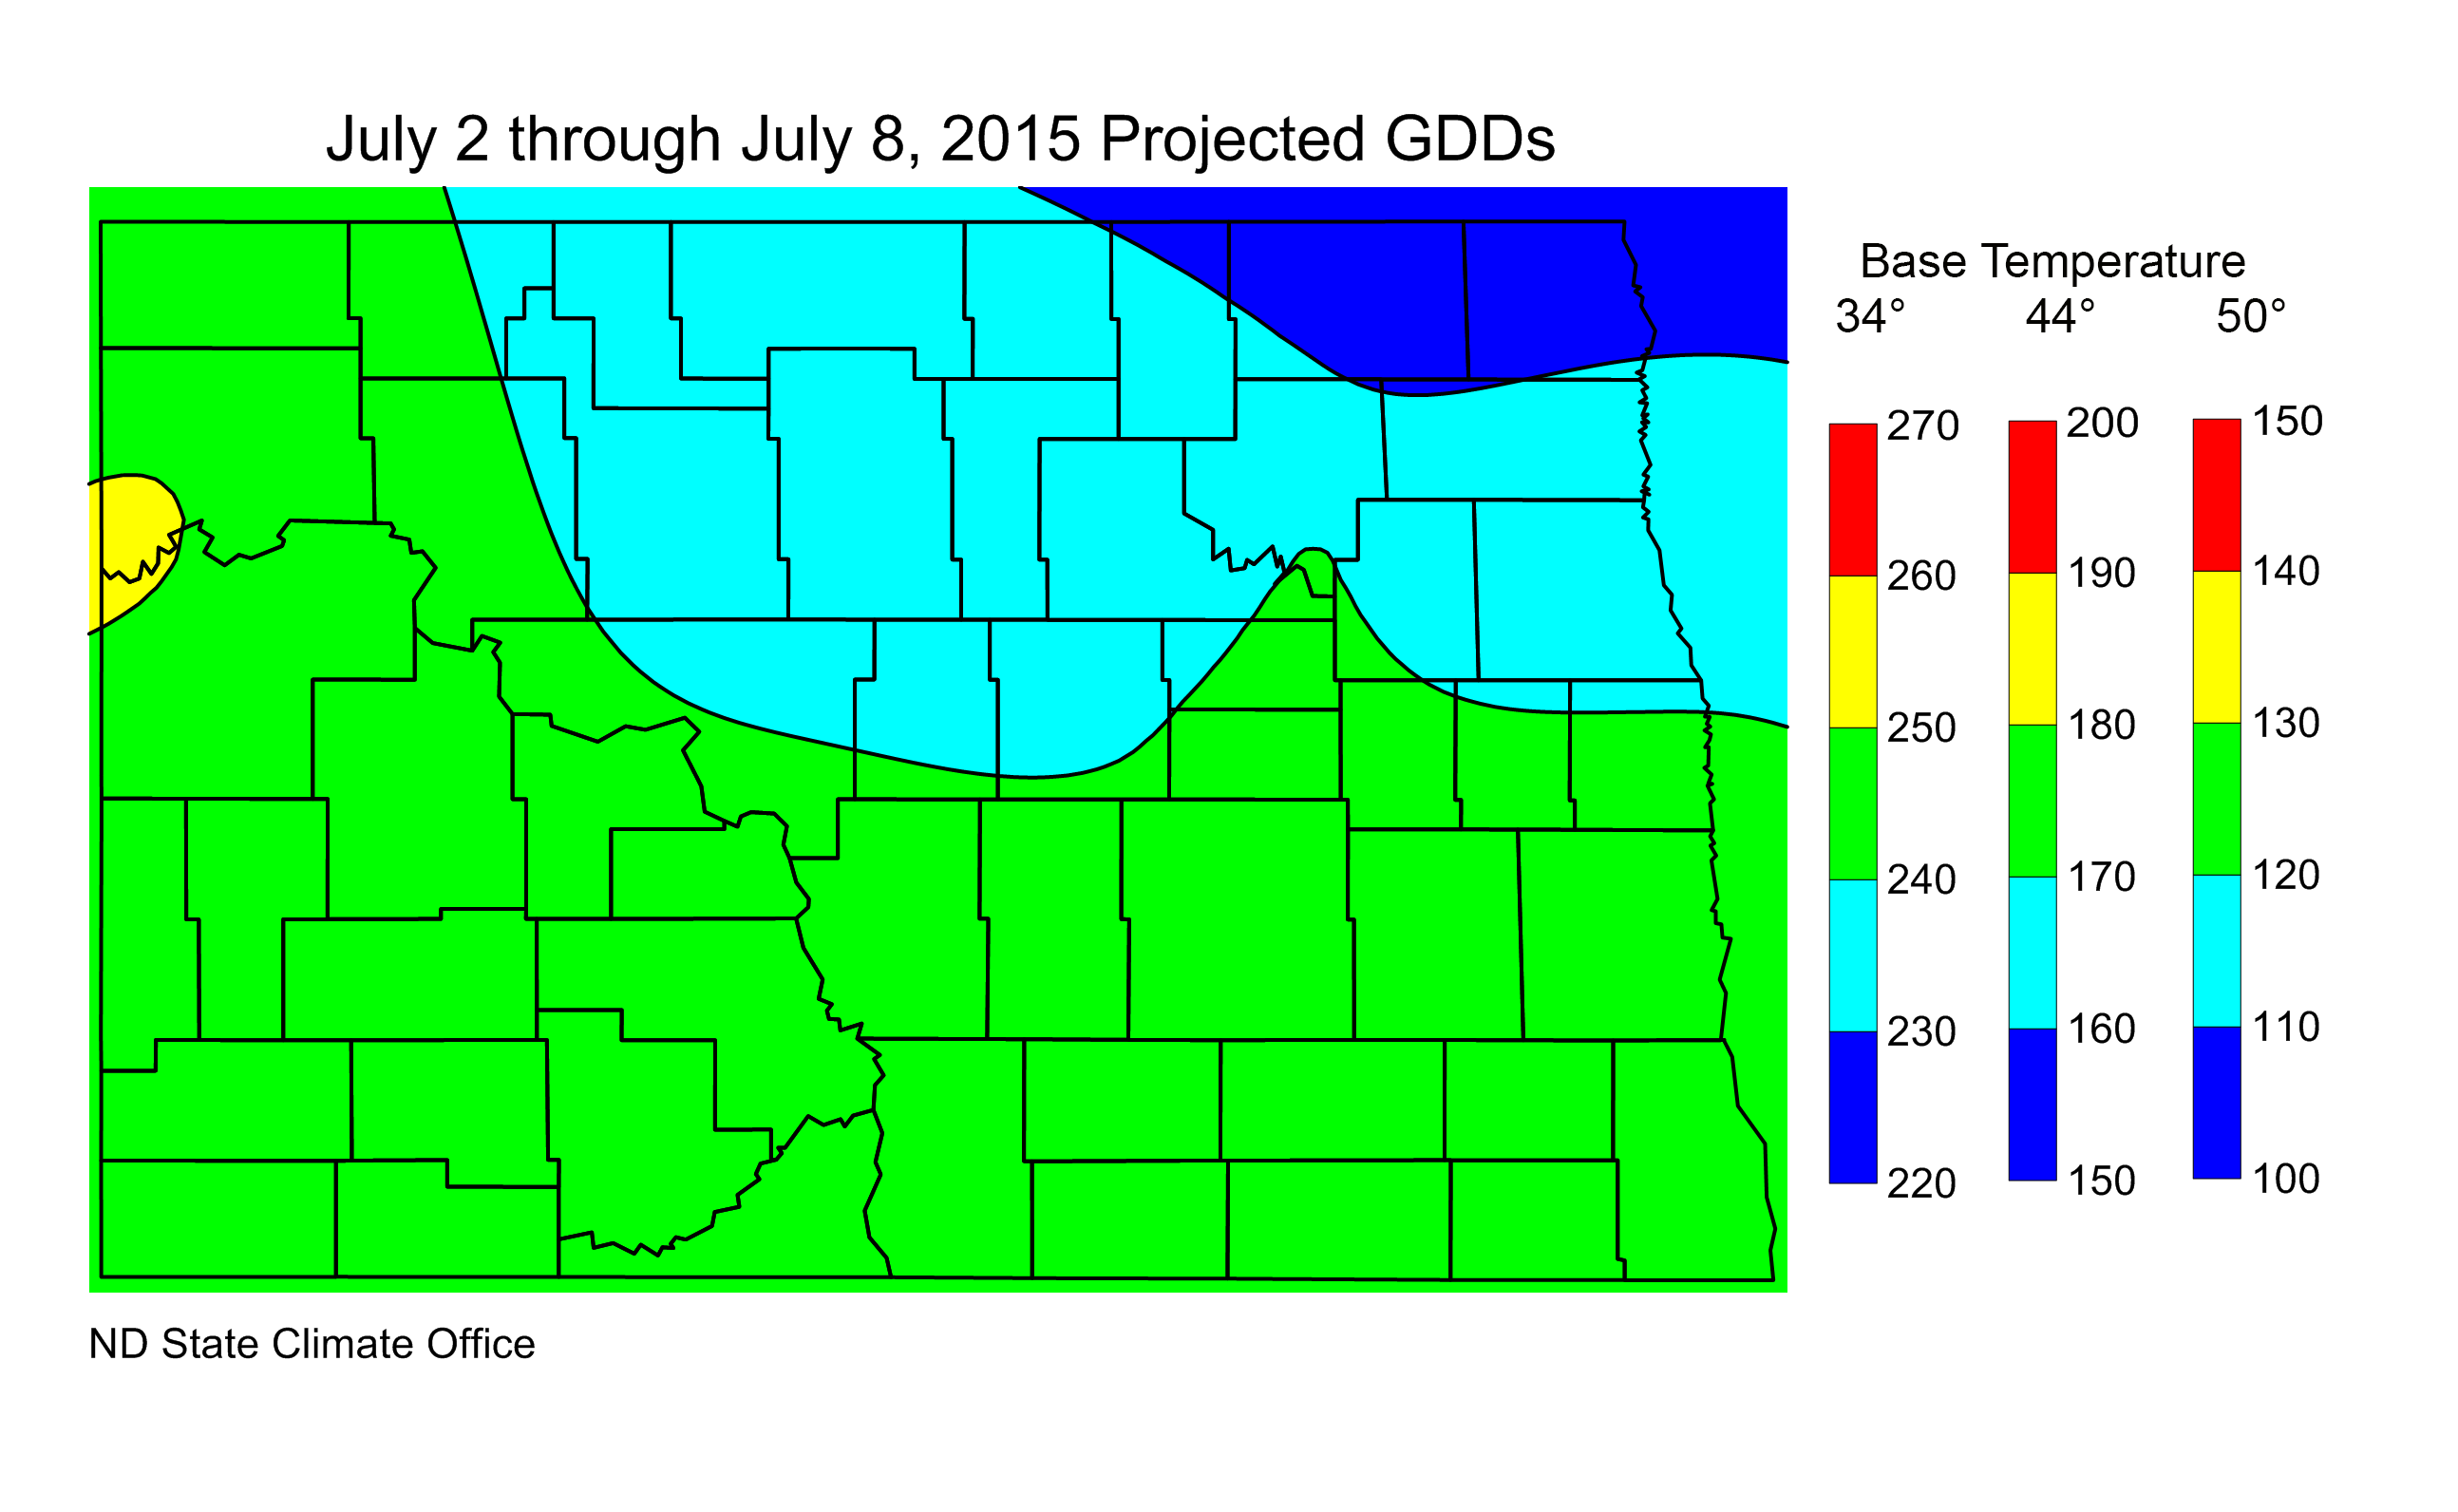 Figure 3.  Estimated Growing Degree Days for the period from July 2 to July 8